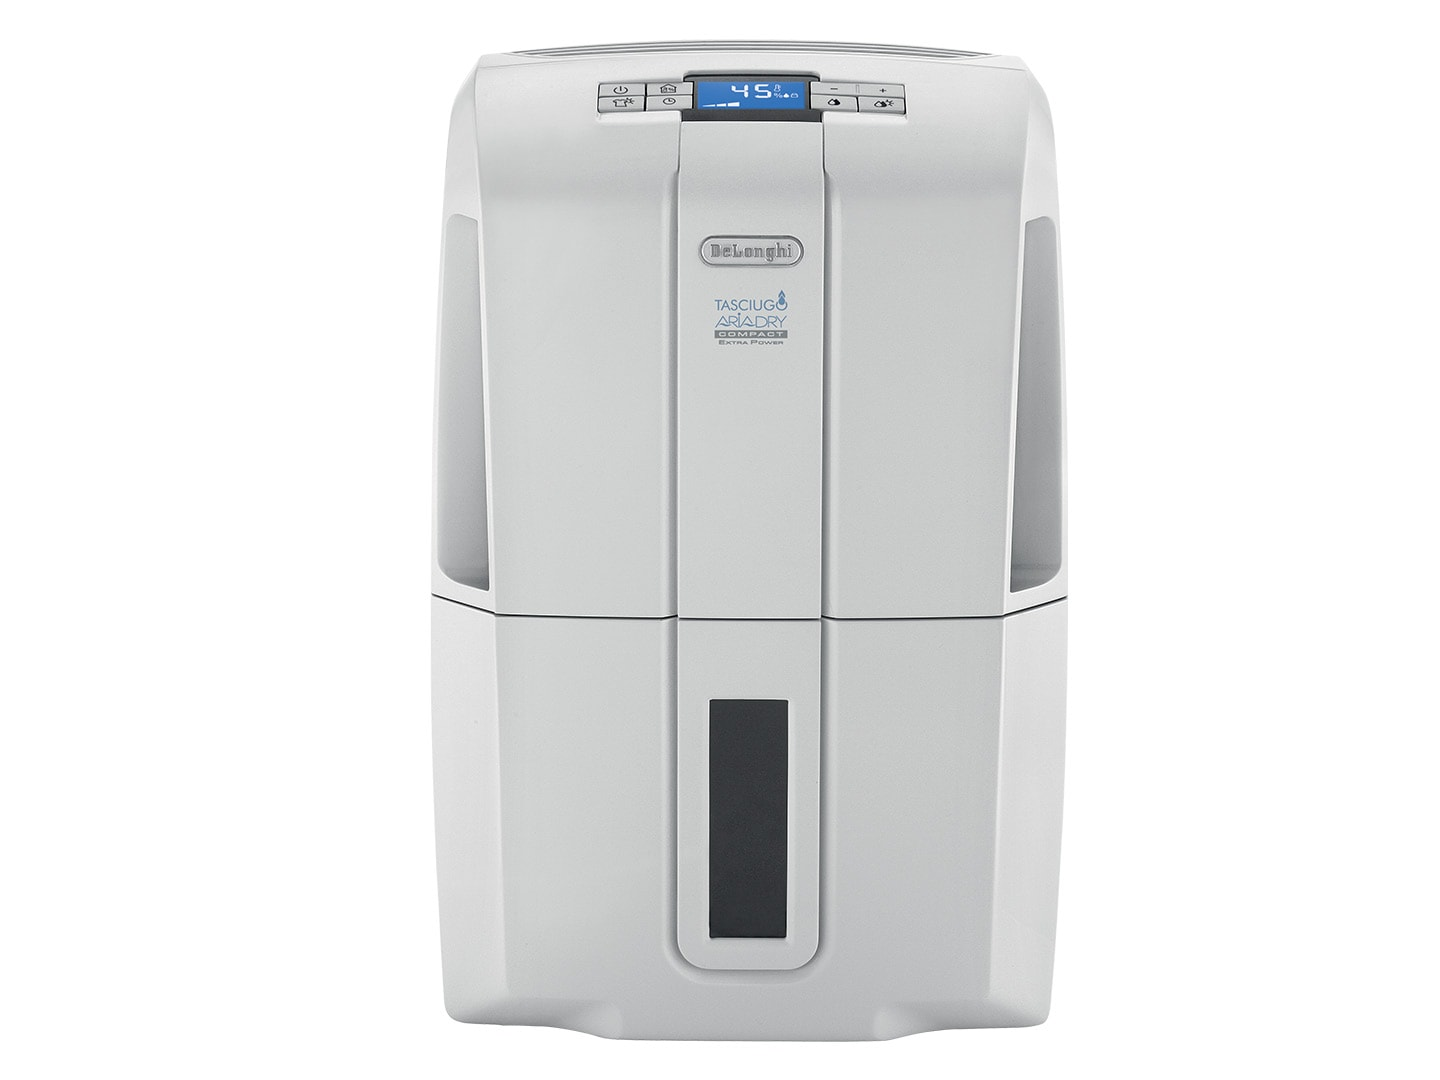 DDS 30COMBI Delonghi France